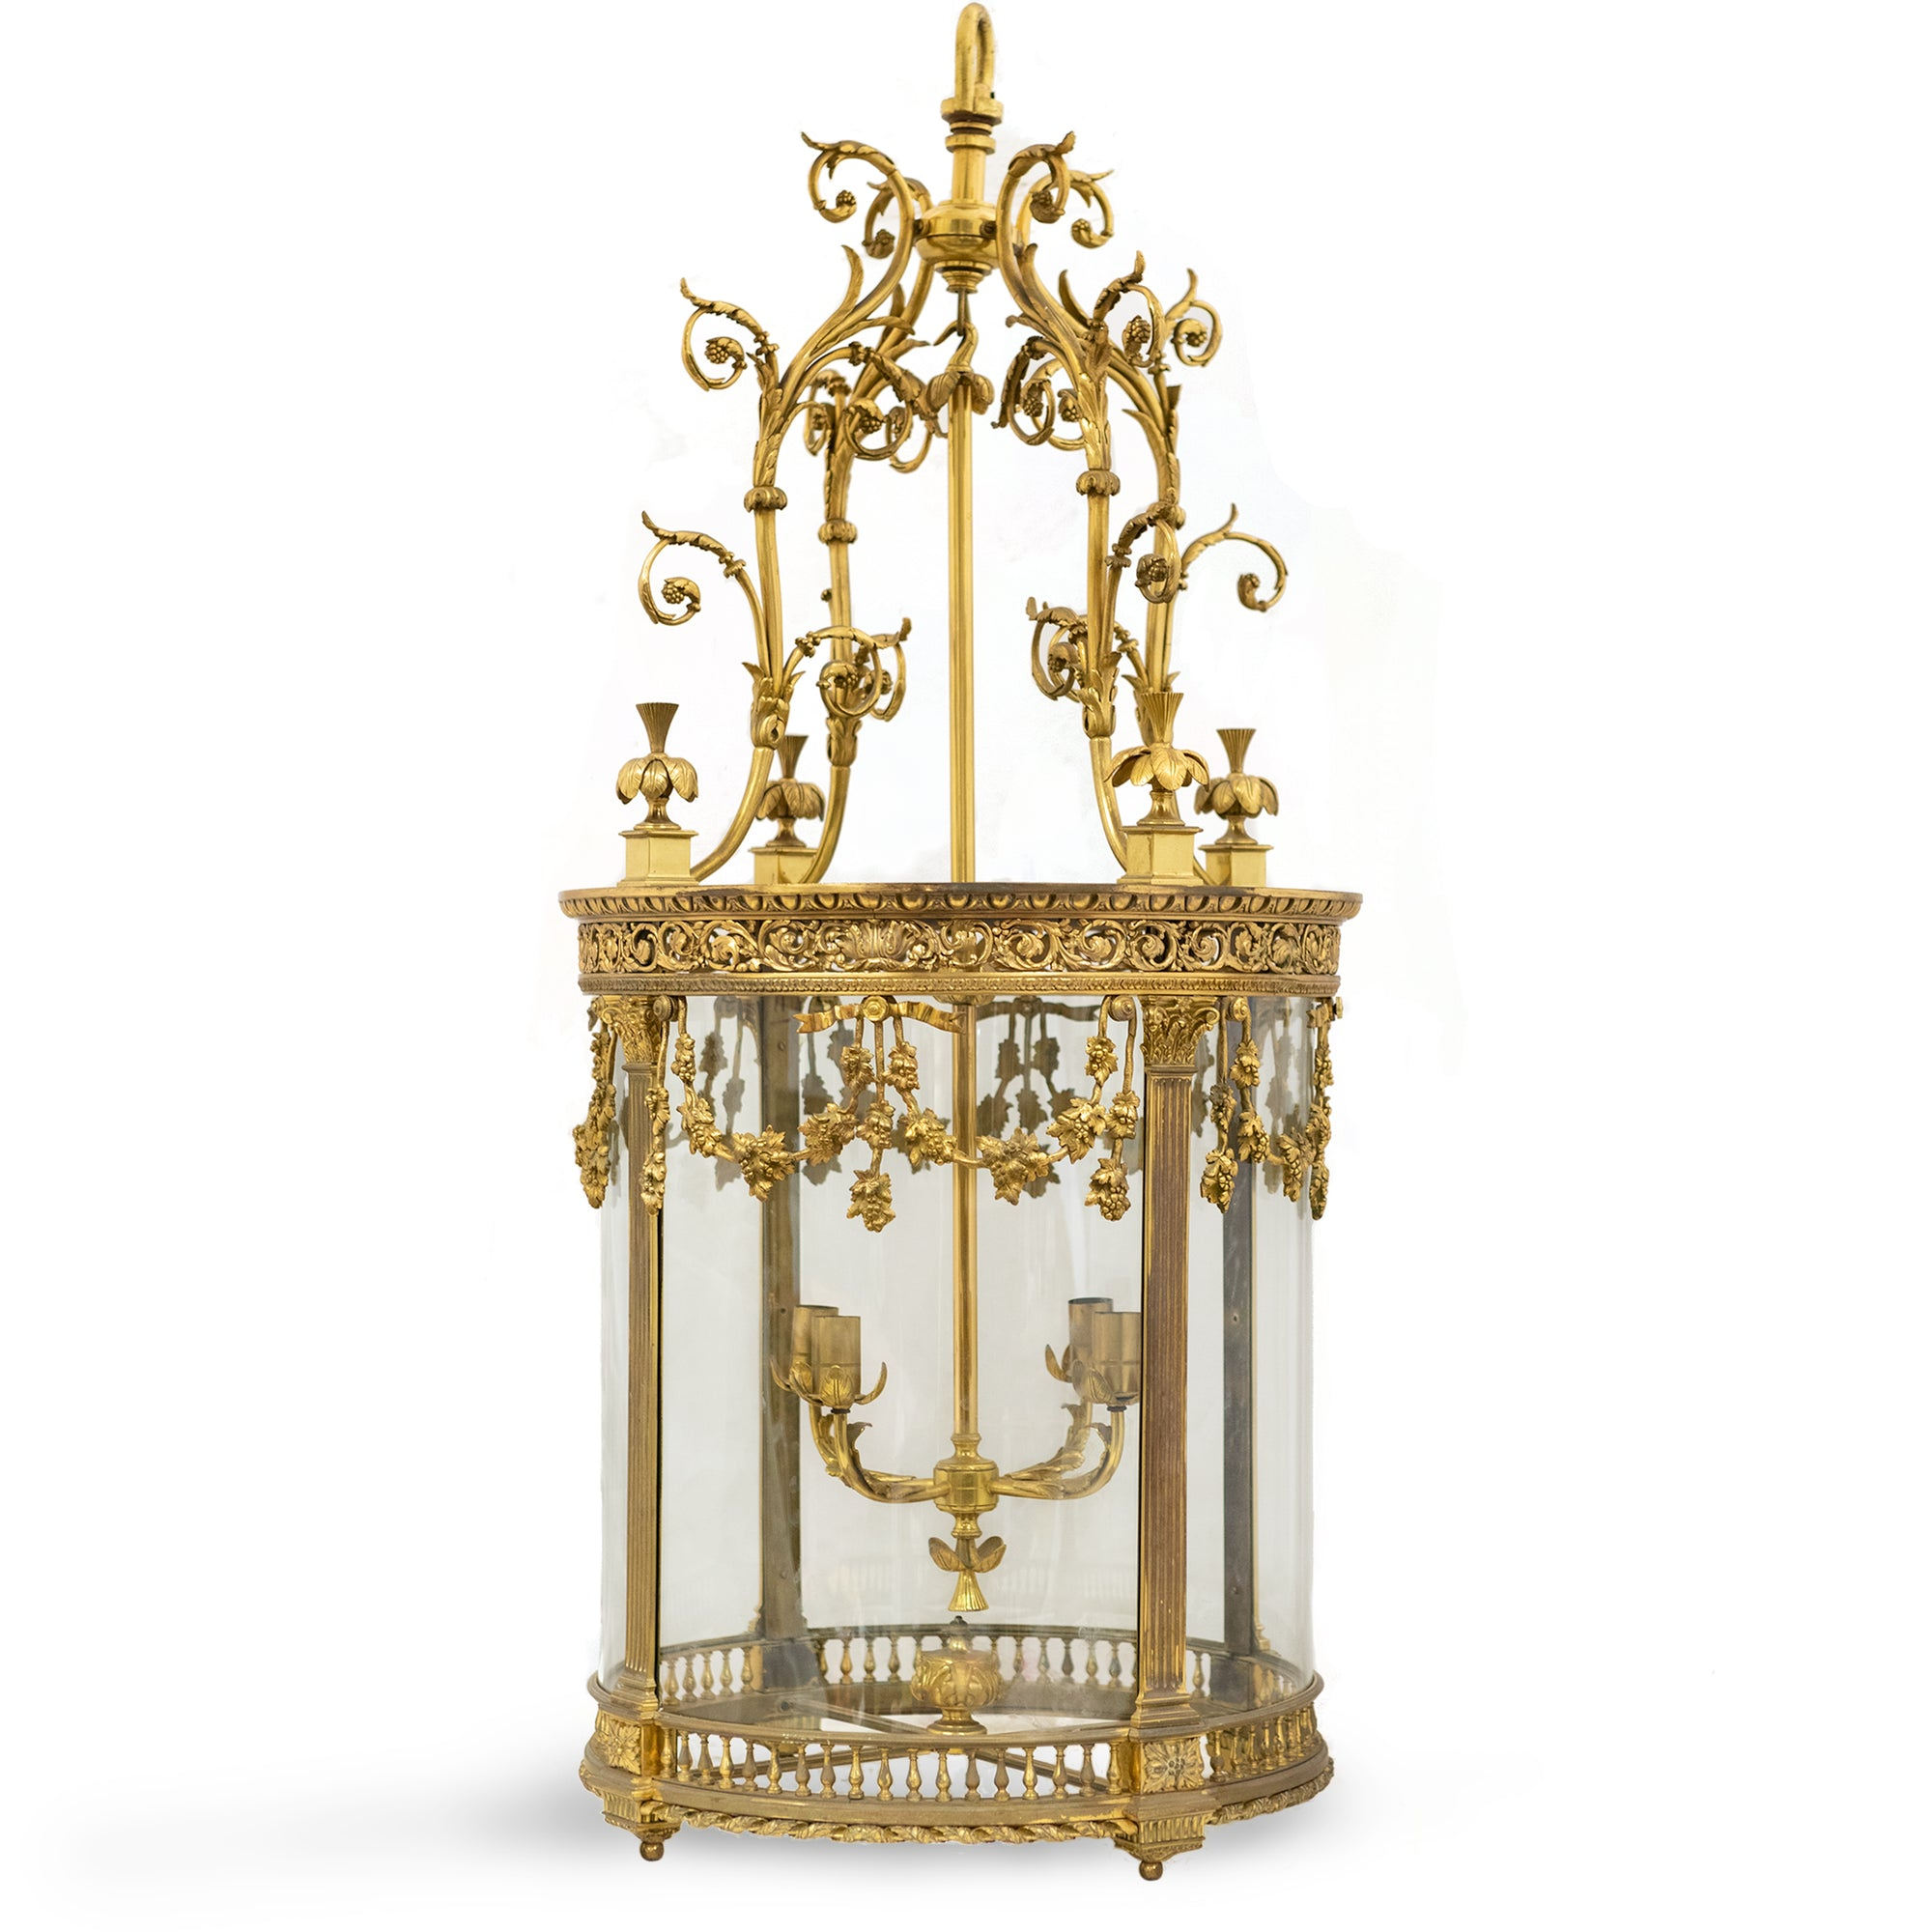 Reclaimed Antique Oversized Ornate French Brass Lantern | The Architectural Forum